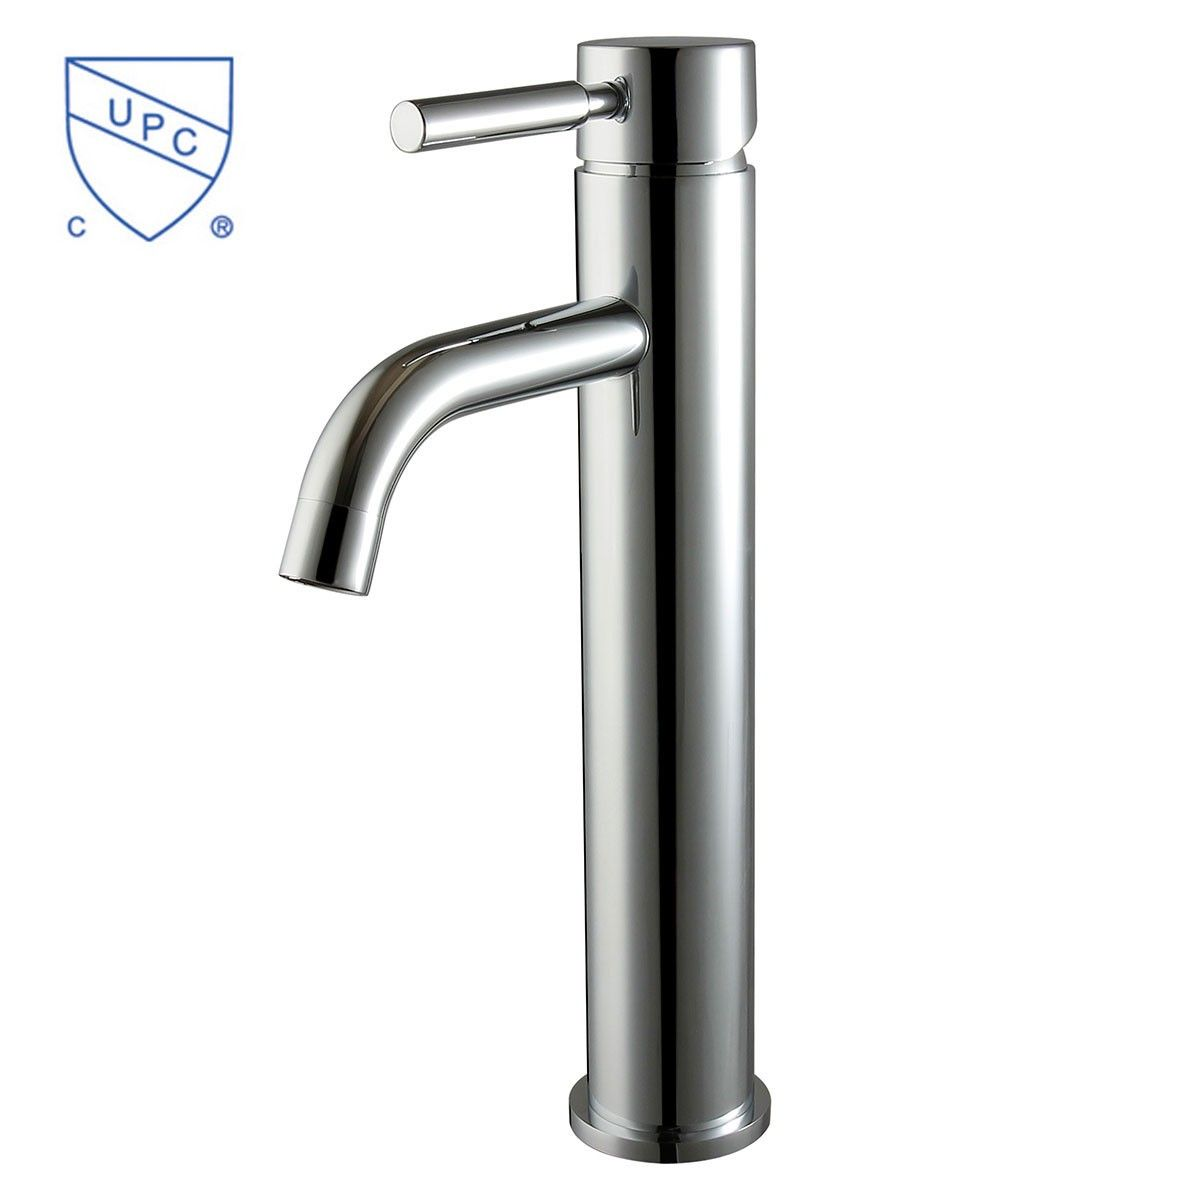 Above Counter Basin&Sink Faucet - Single Hole Single Lever - Brass with Chrome Finish (5920)